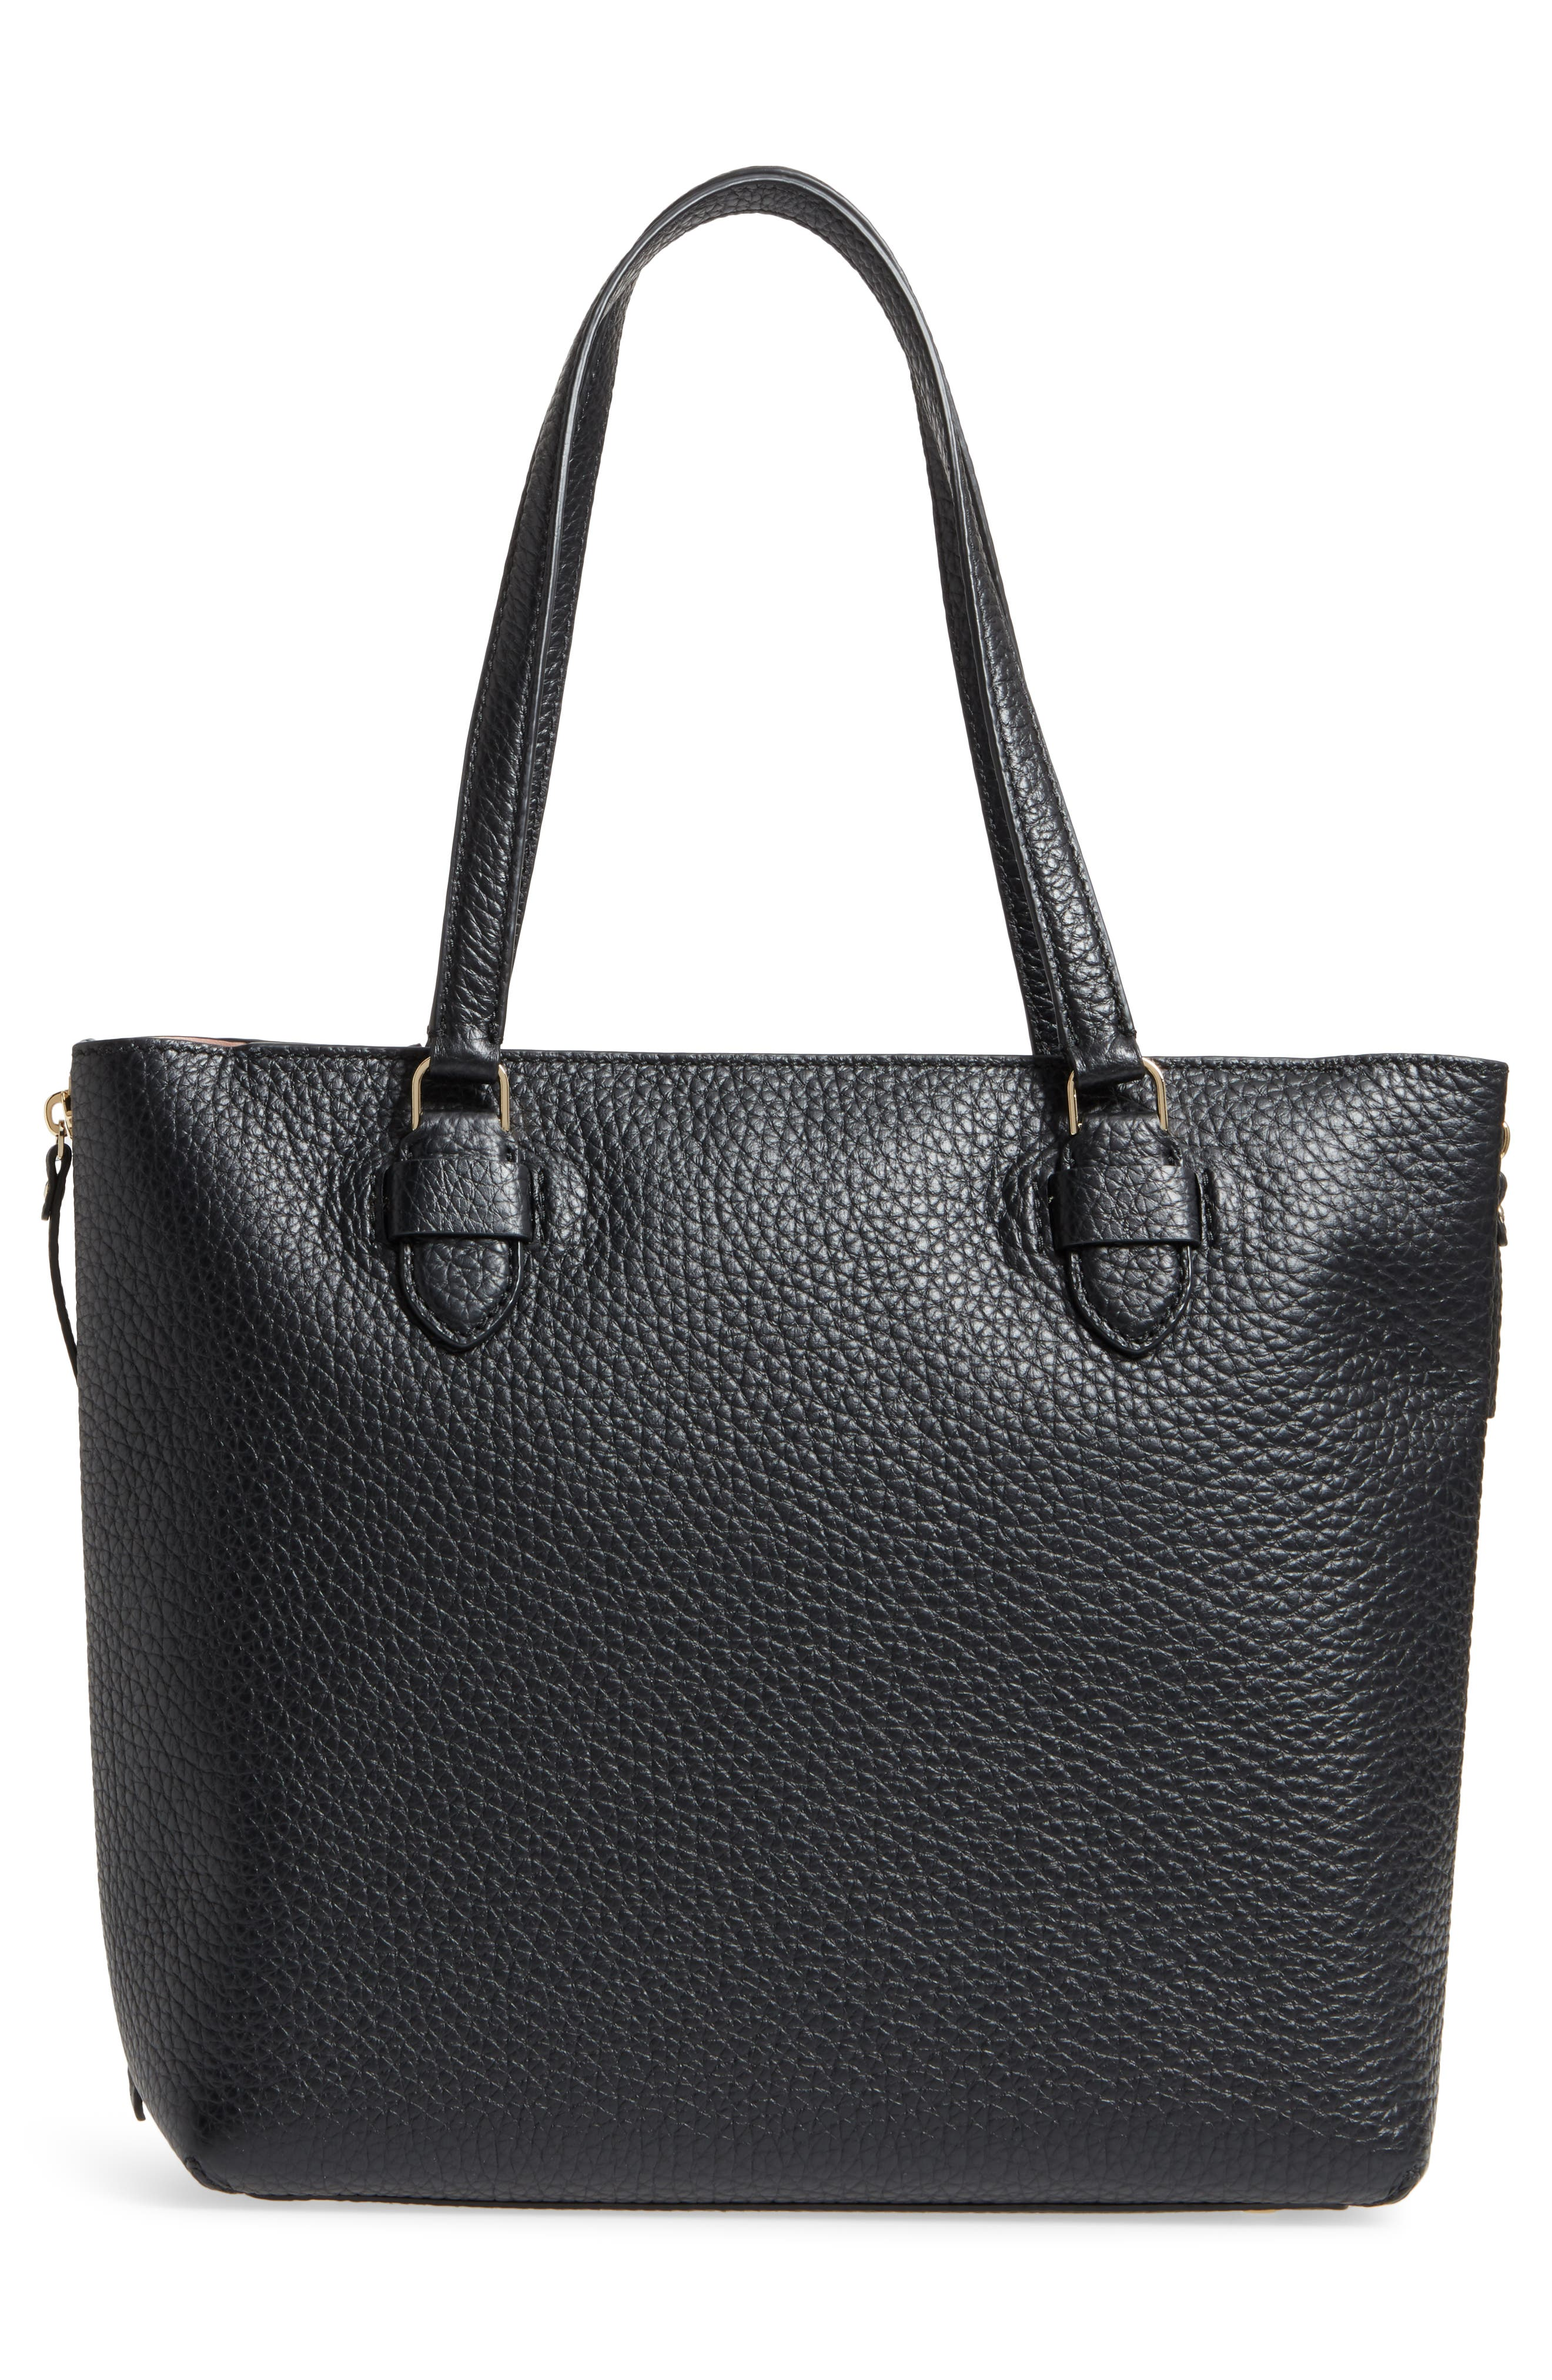 carter street - selena leather tote,                             Alternate thumbnail 5, color,